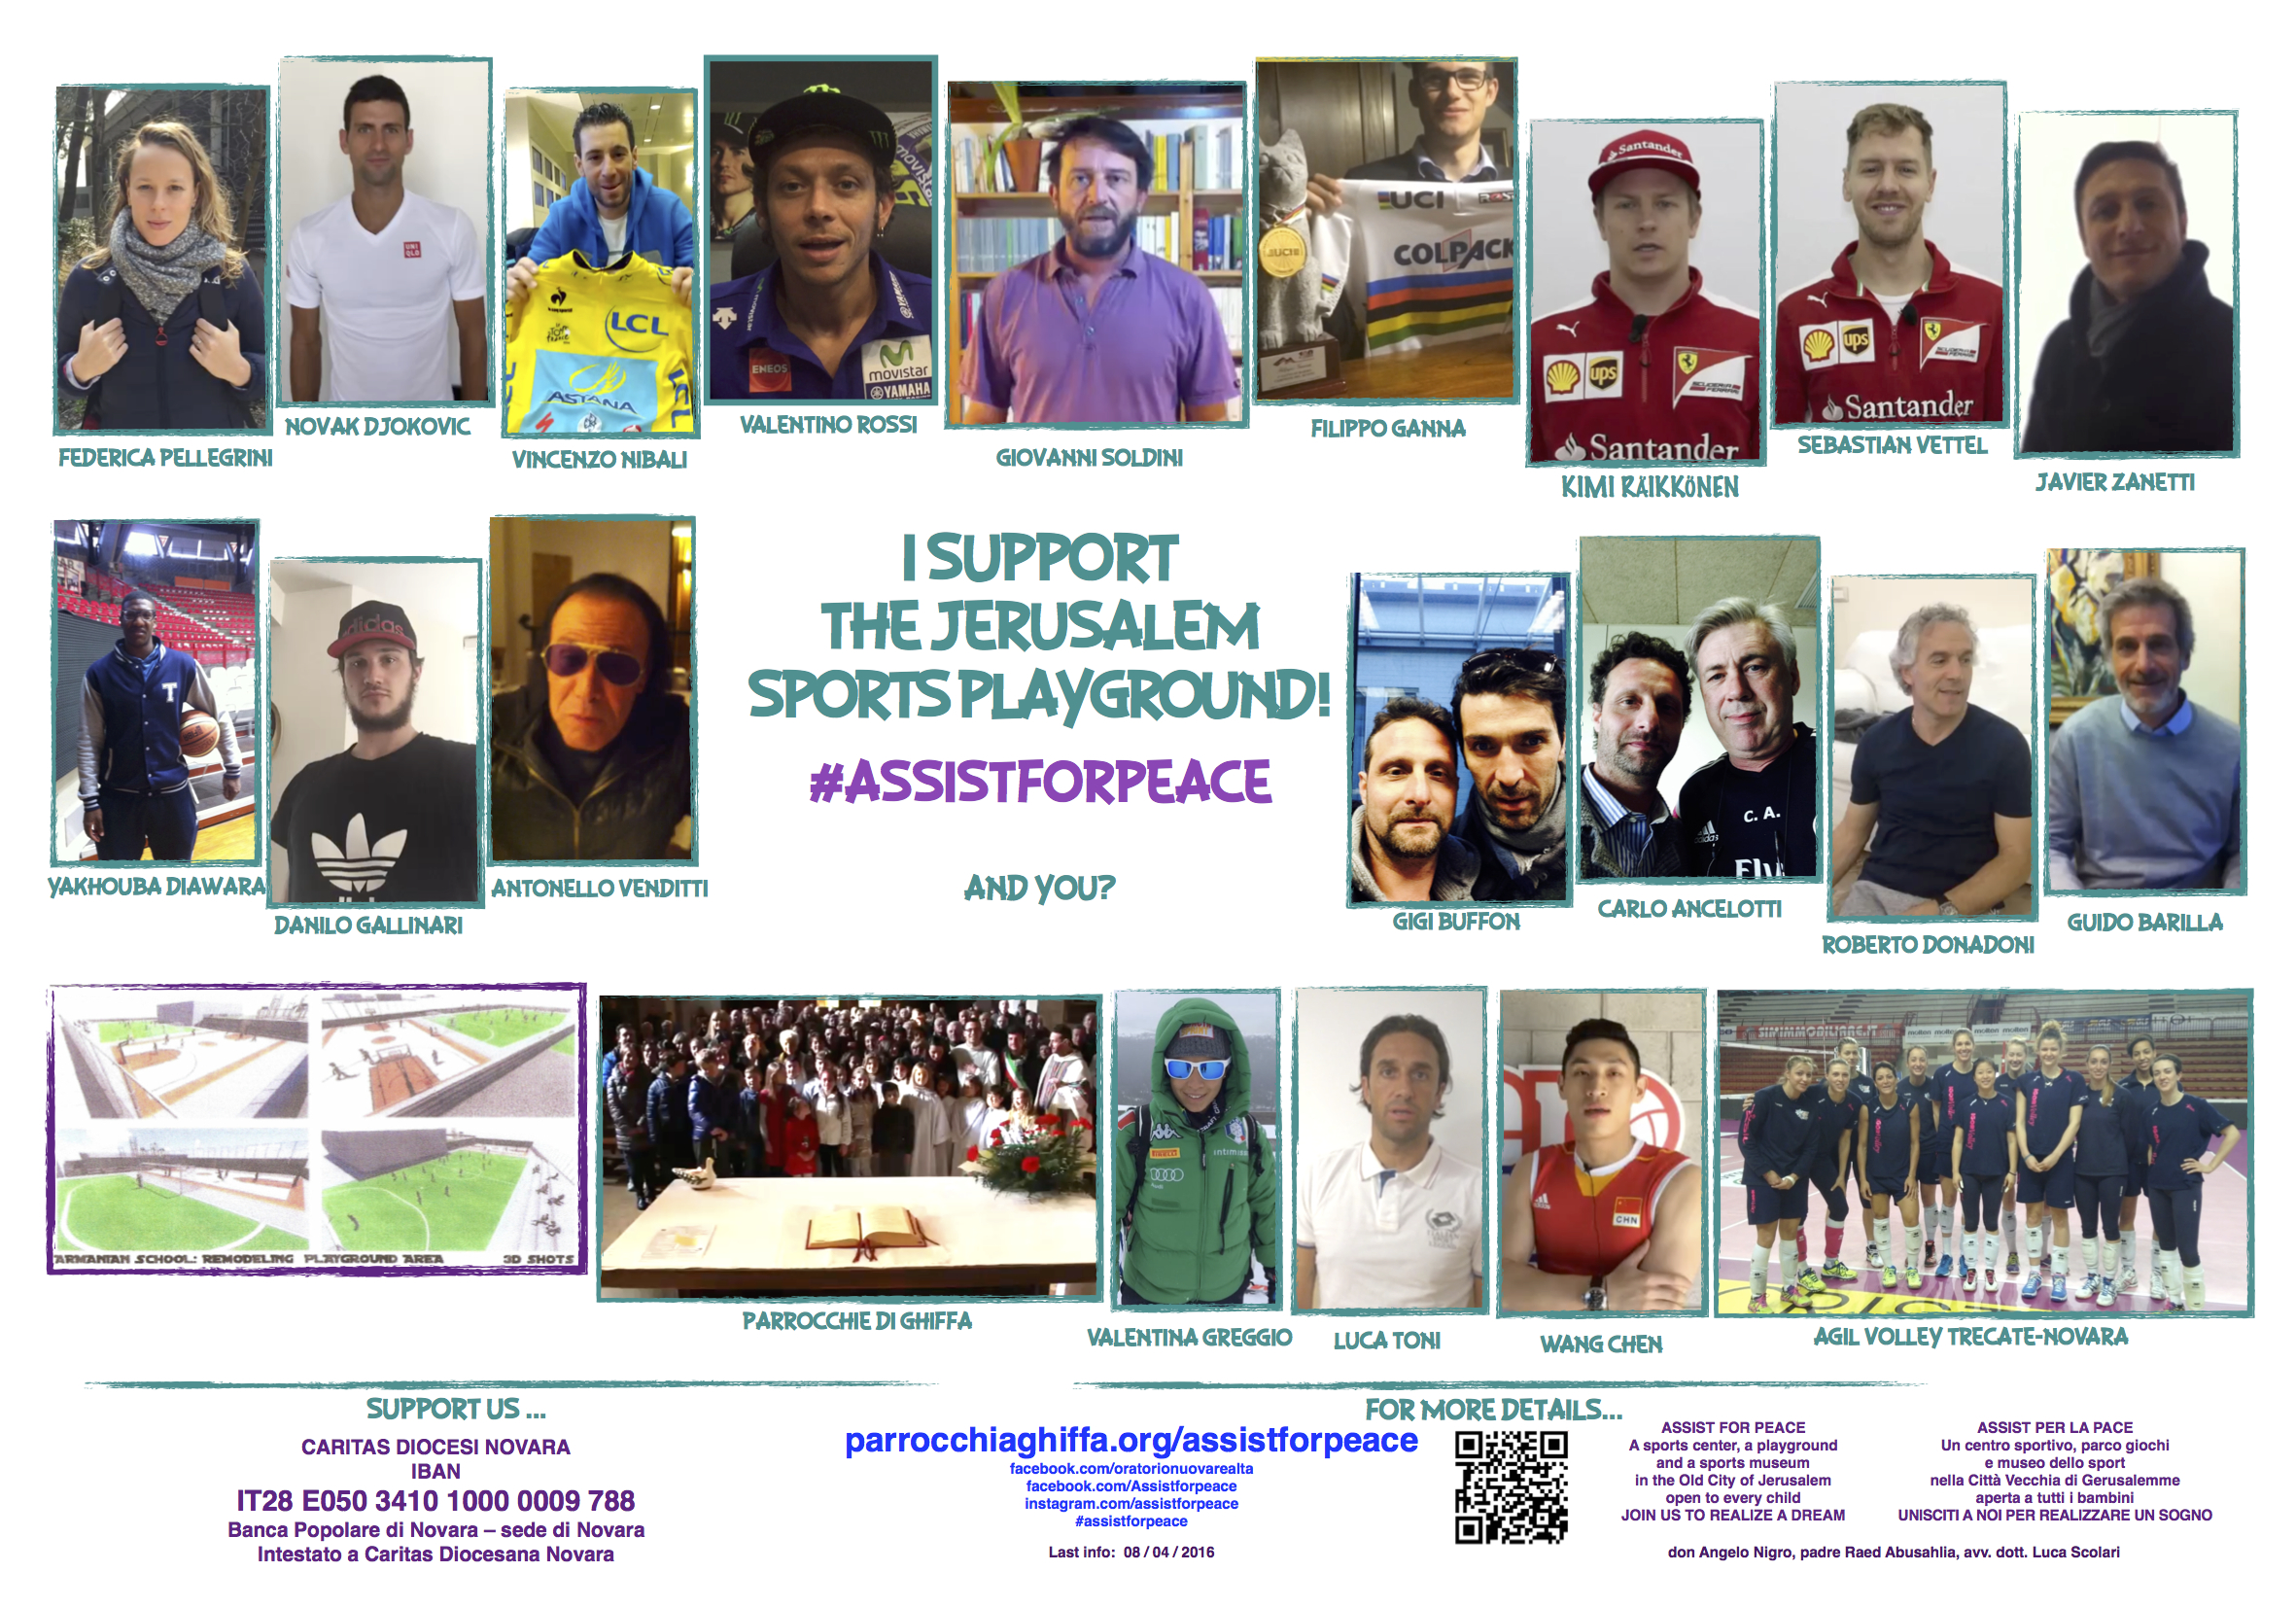 ASSISTFORPEACE - SUPPORTERS